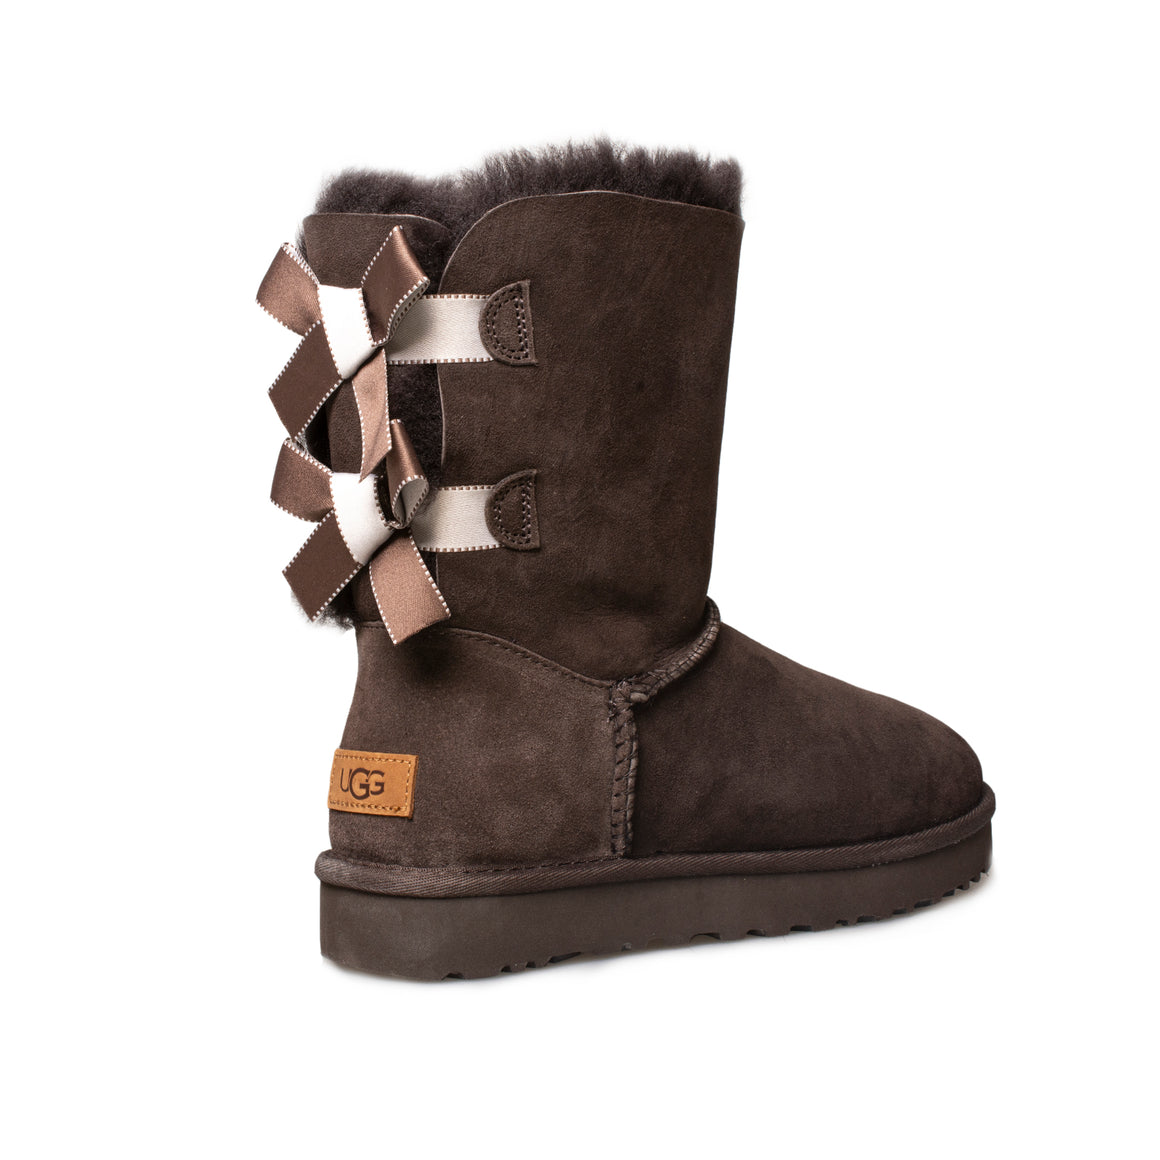 UGG Bailey Bow II Shimmer Chocolate Boots - Women's